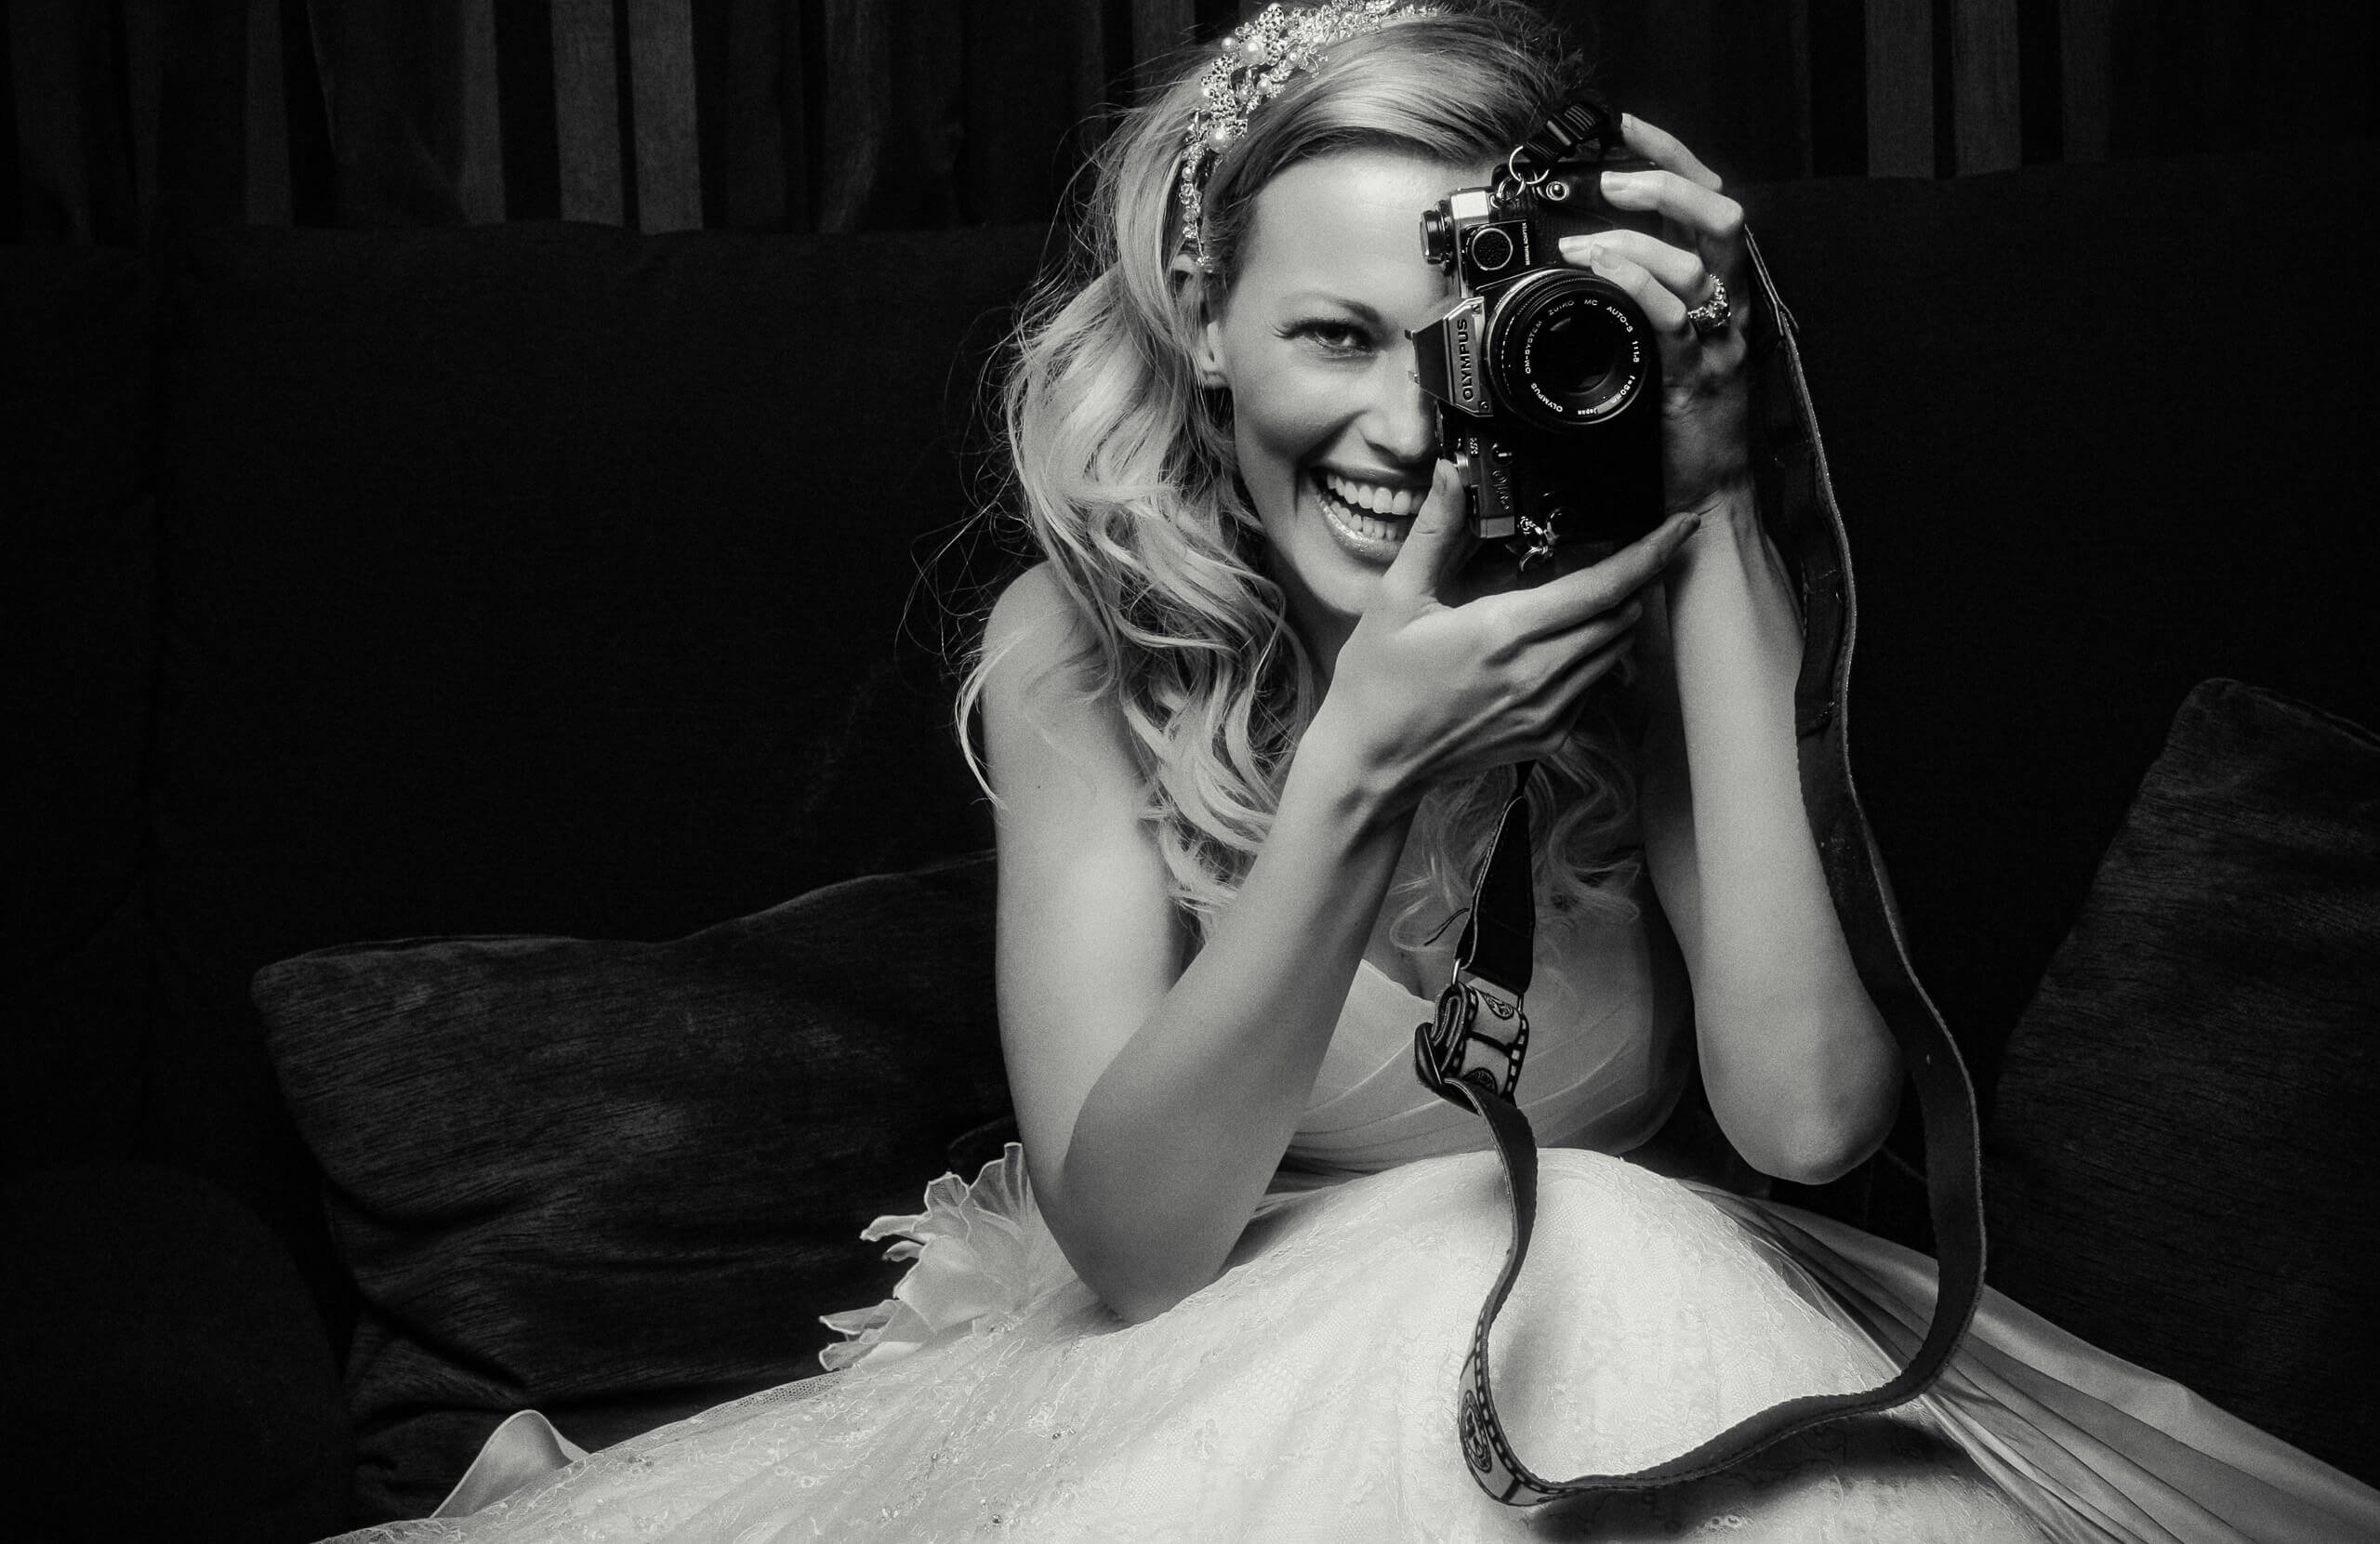 Black and white photo of bride taking photo with vintage camera